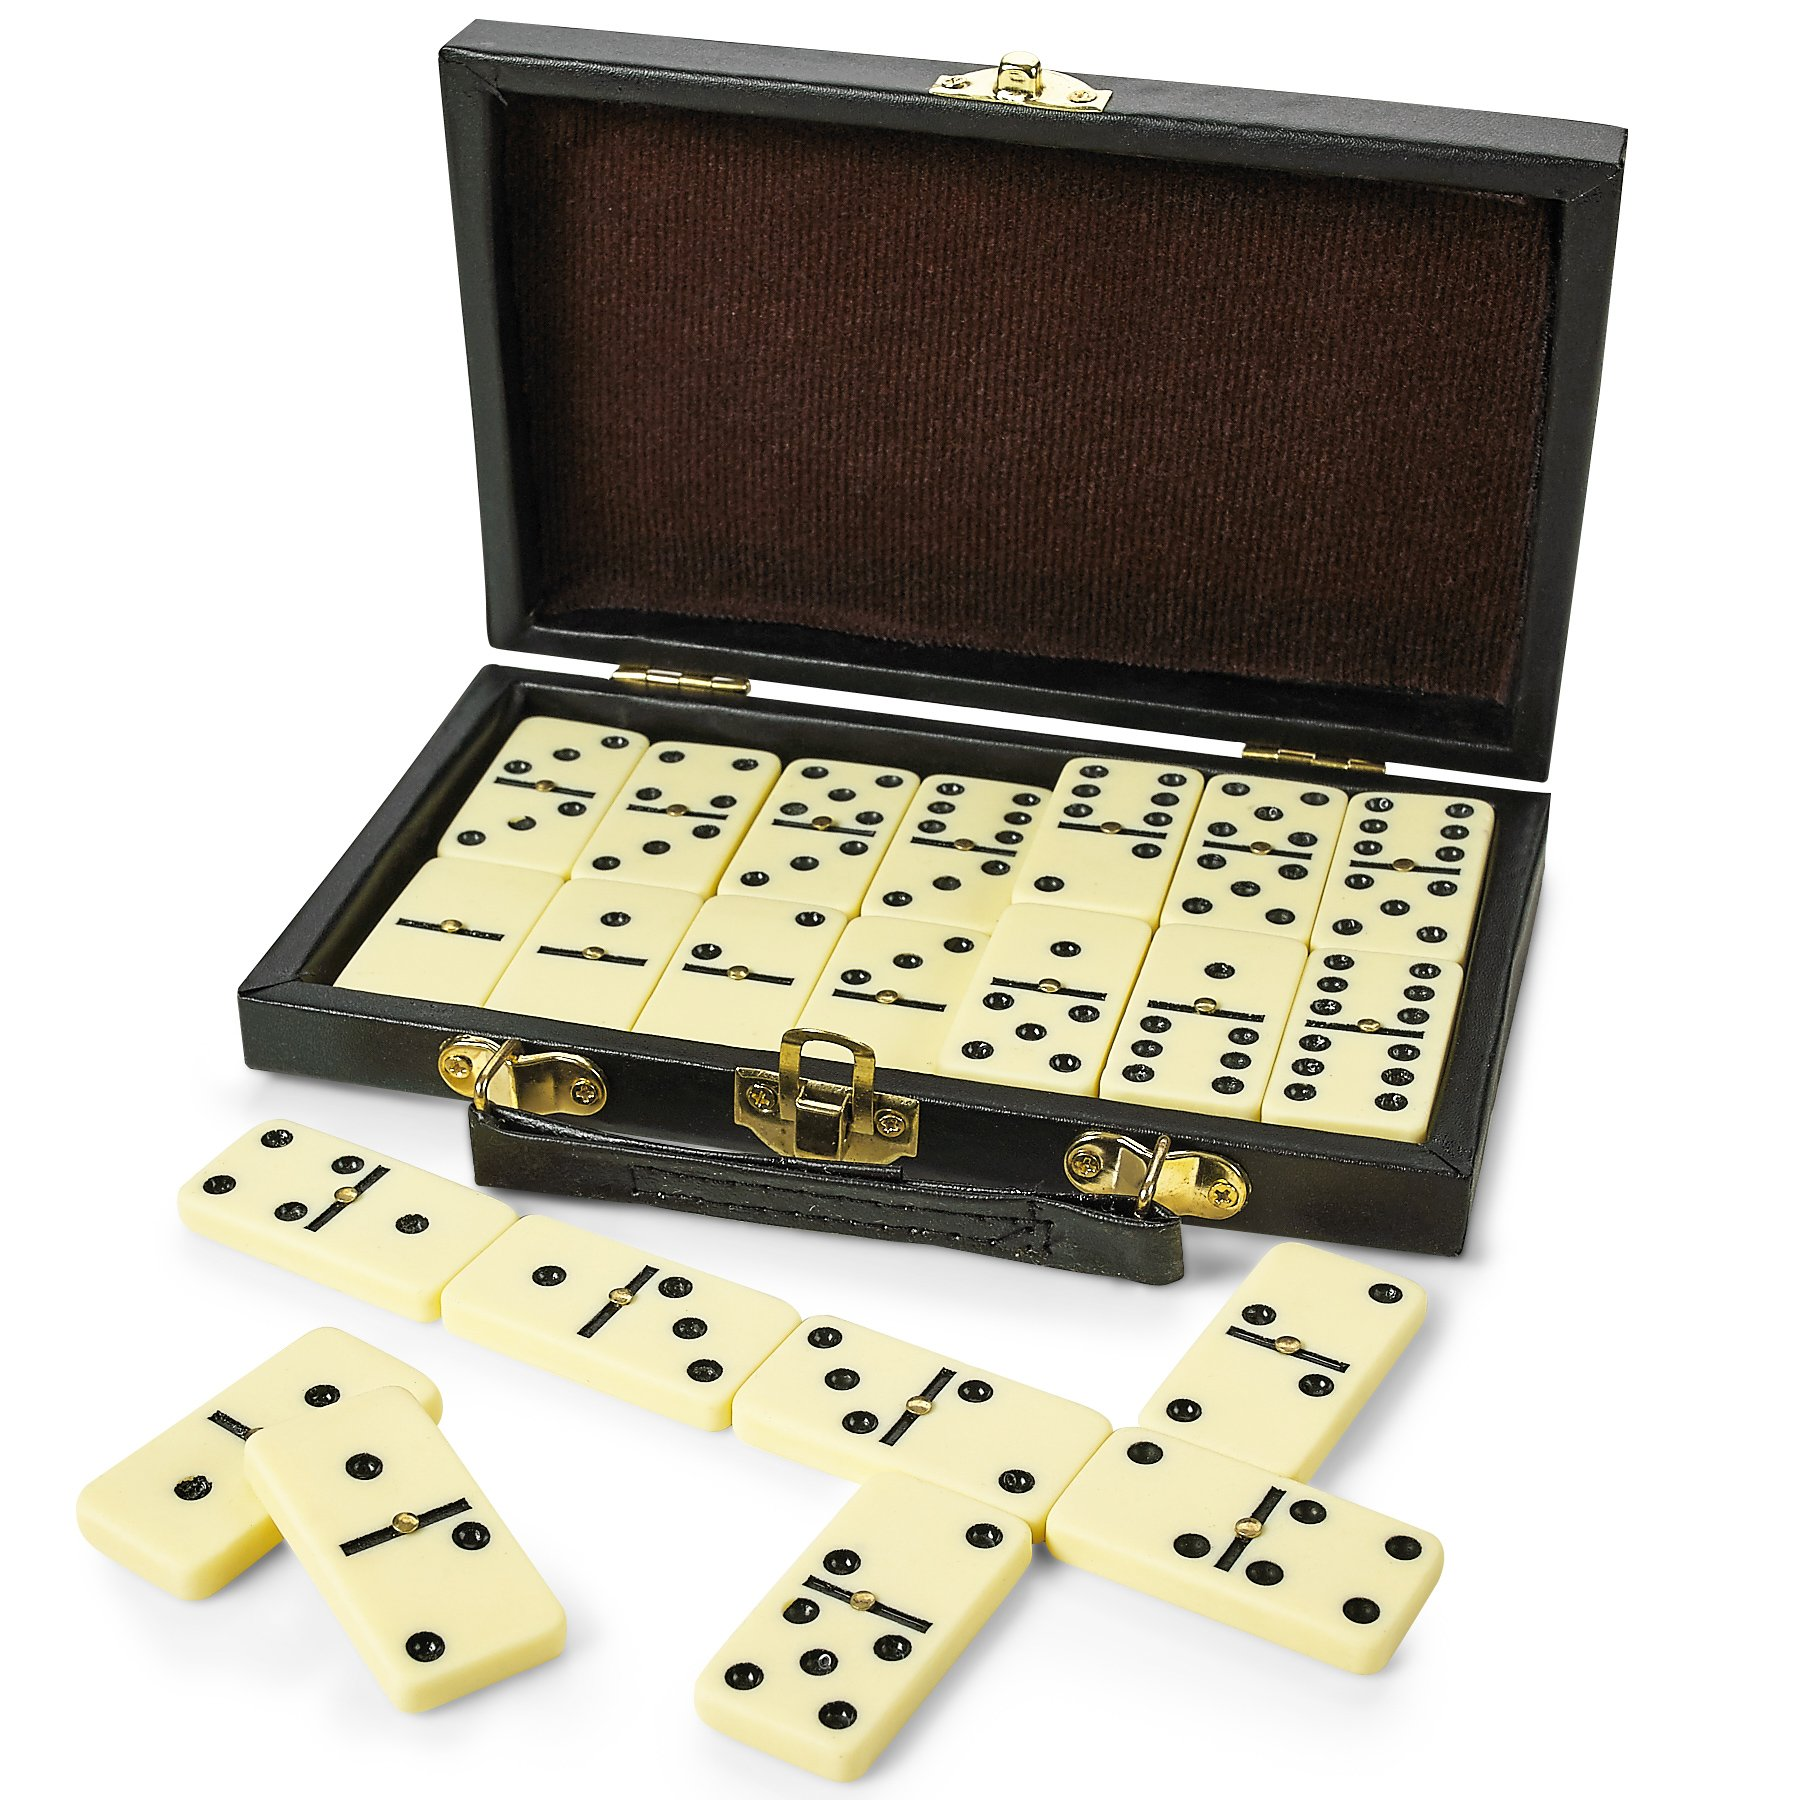 Kicko Domino Set - Premium Classic 28 Pieces Double Six In Durable Wooden Brown Box For Boys, Girls, Party Favors and Anytime Use - Up To 2-4 Players by Kicko